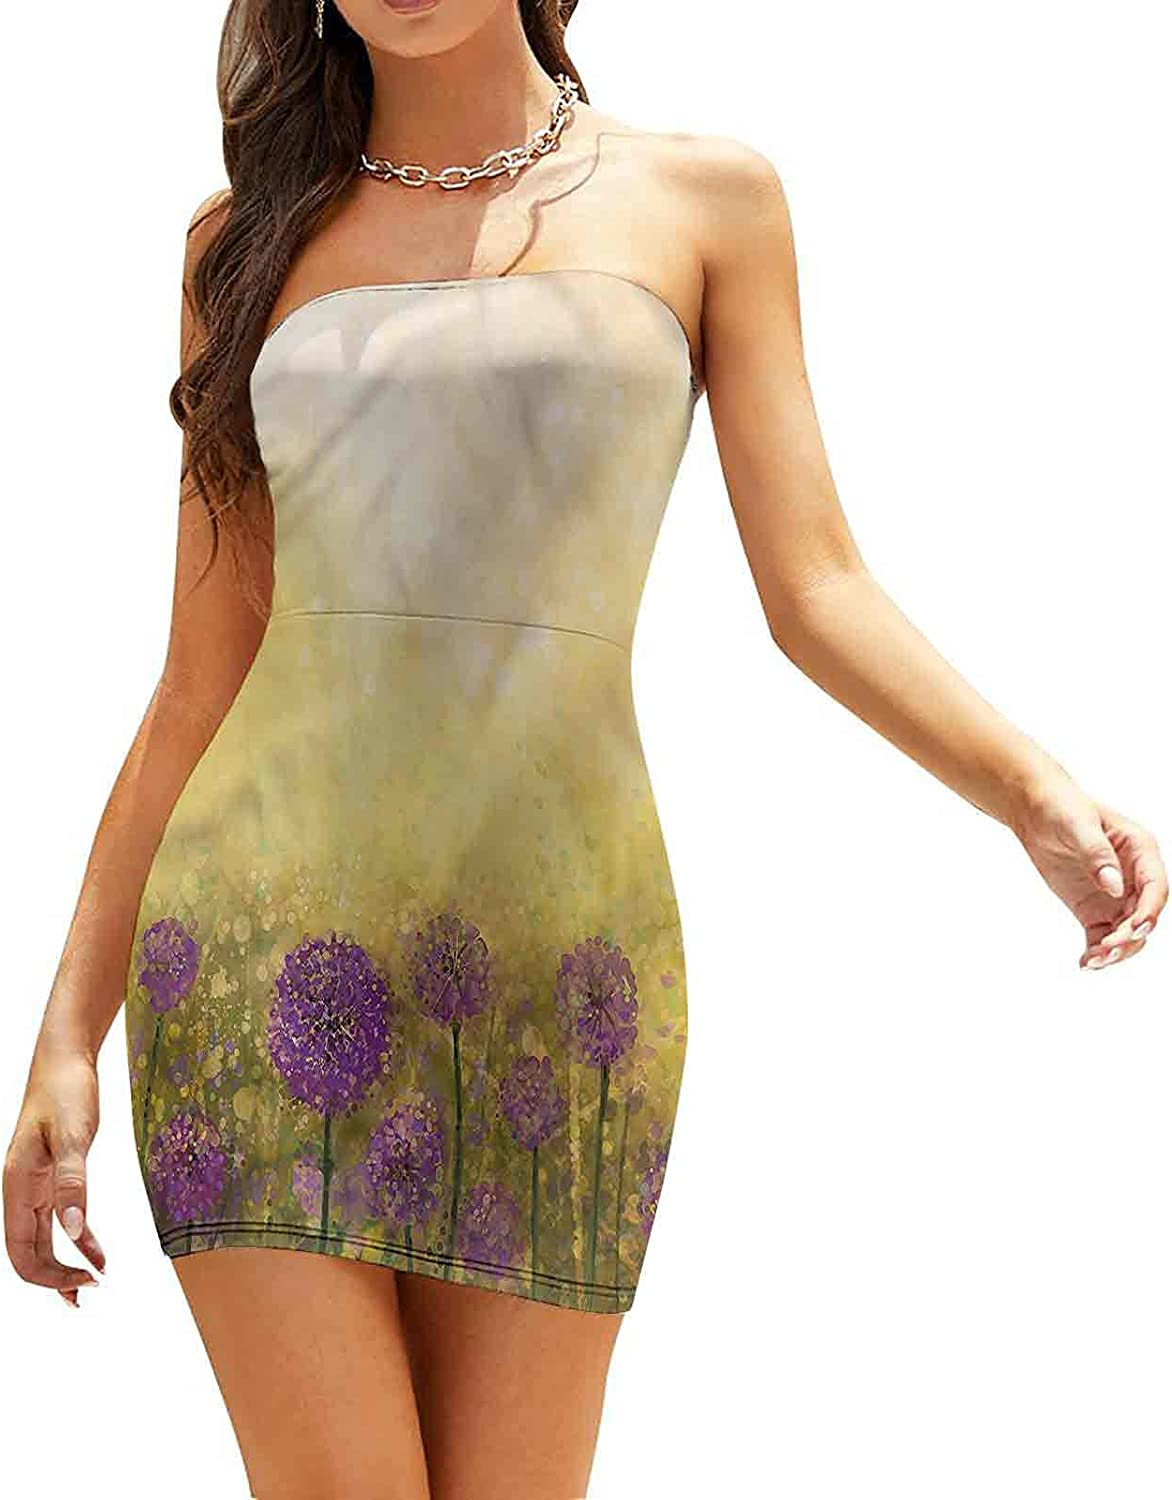 Women's Sleeveless Sexy Tube Top Dress Old Fashioned Floral Dresses